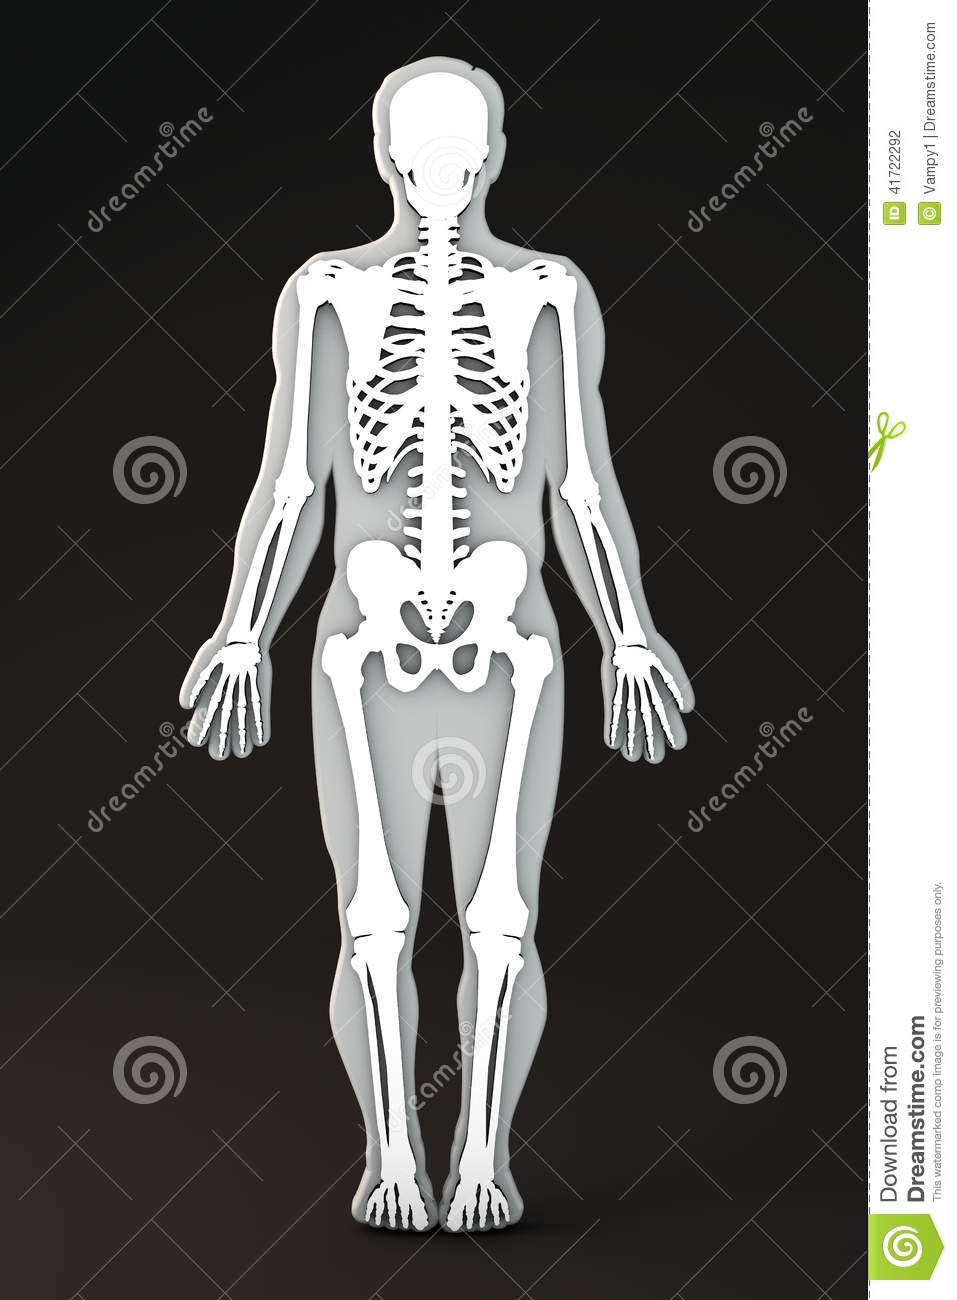 Section Of The Human Body Bones And Skeleton Stock Illustration